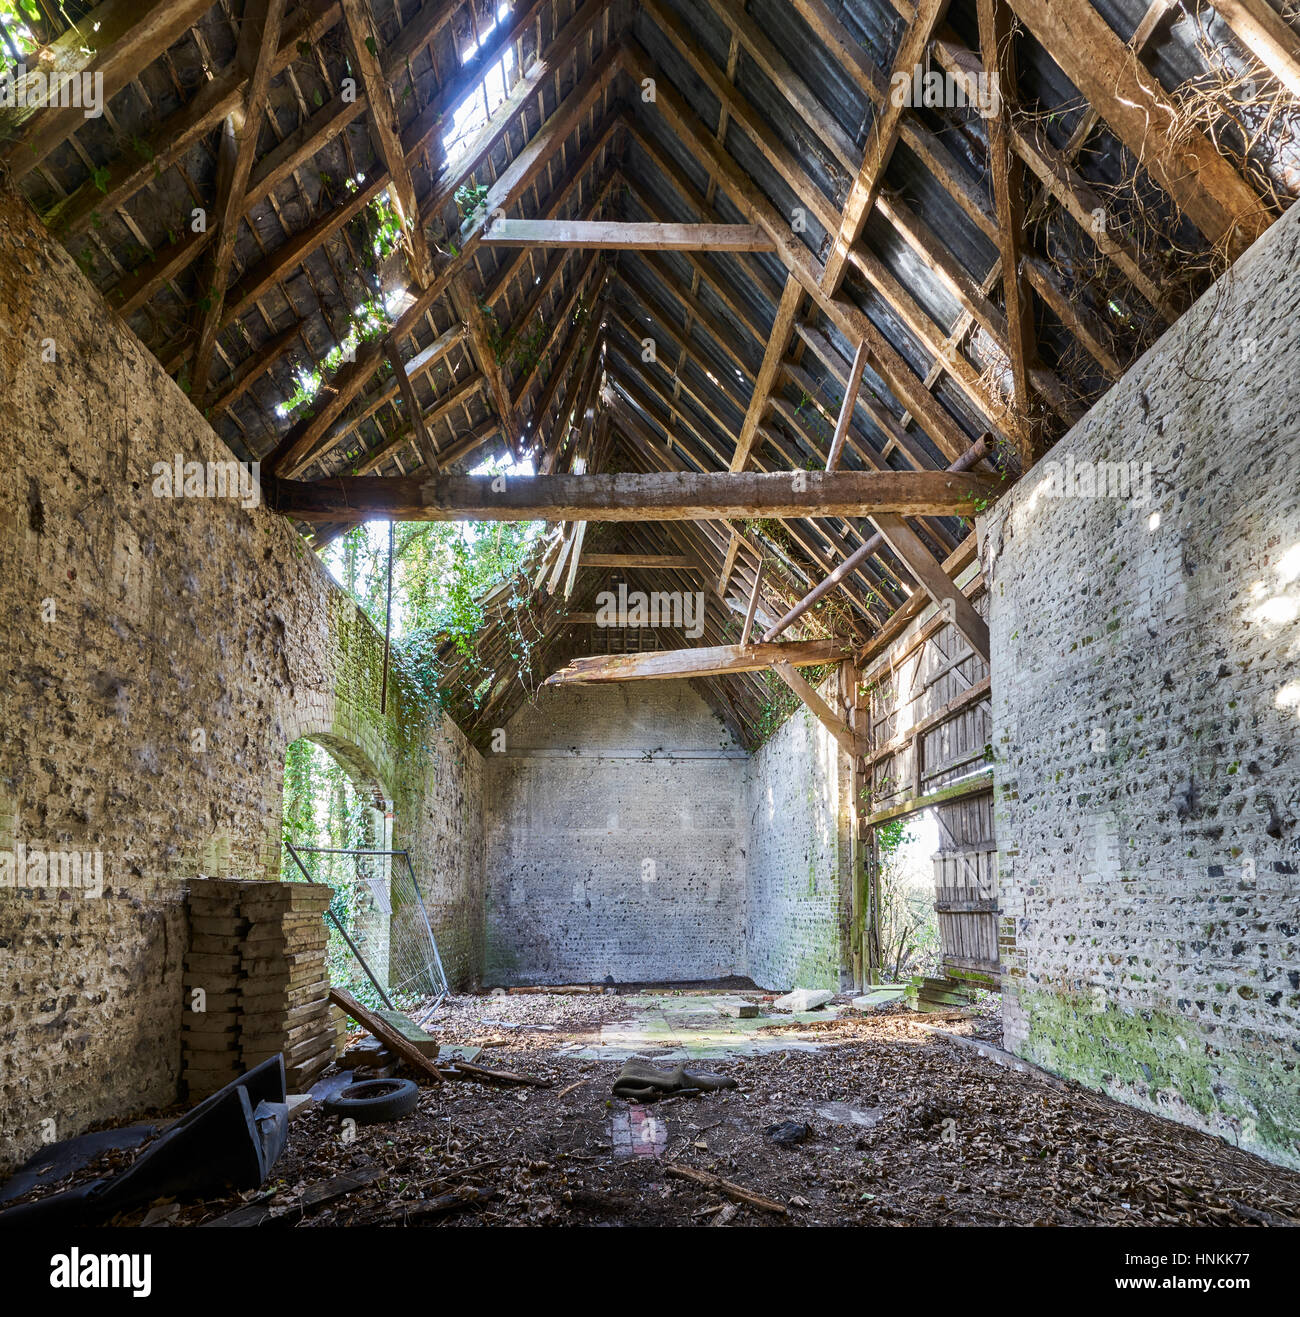 The Interior Of A Dilapidated Collapsing Old Barn